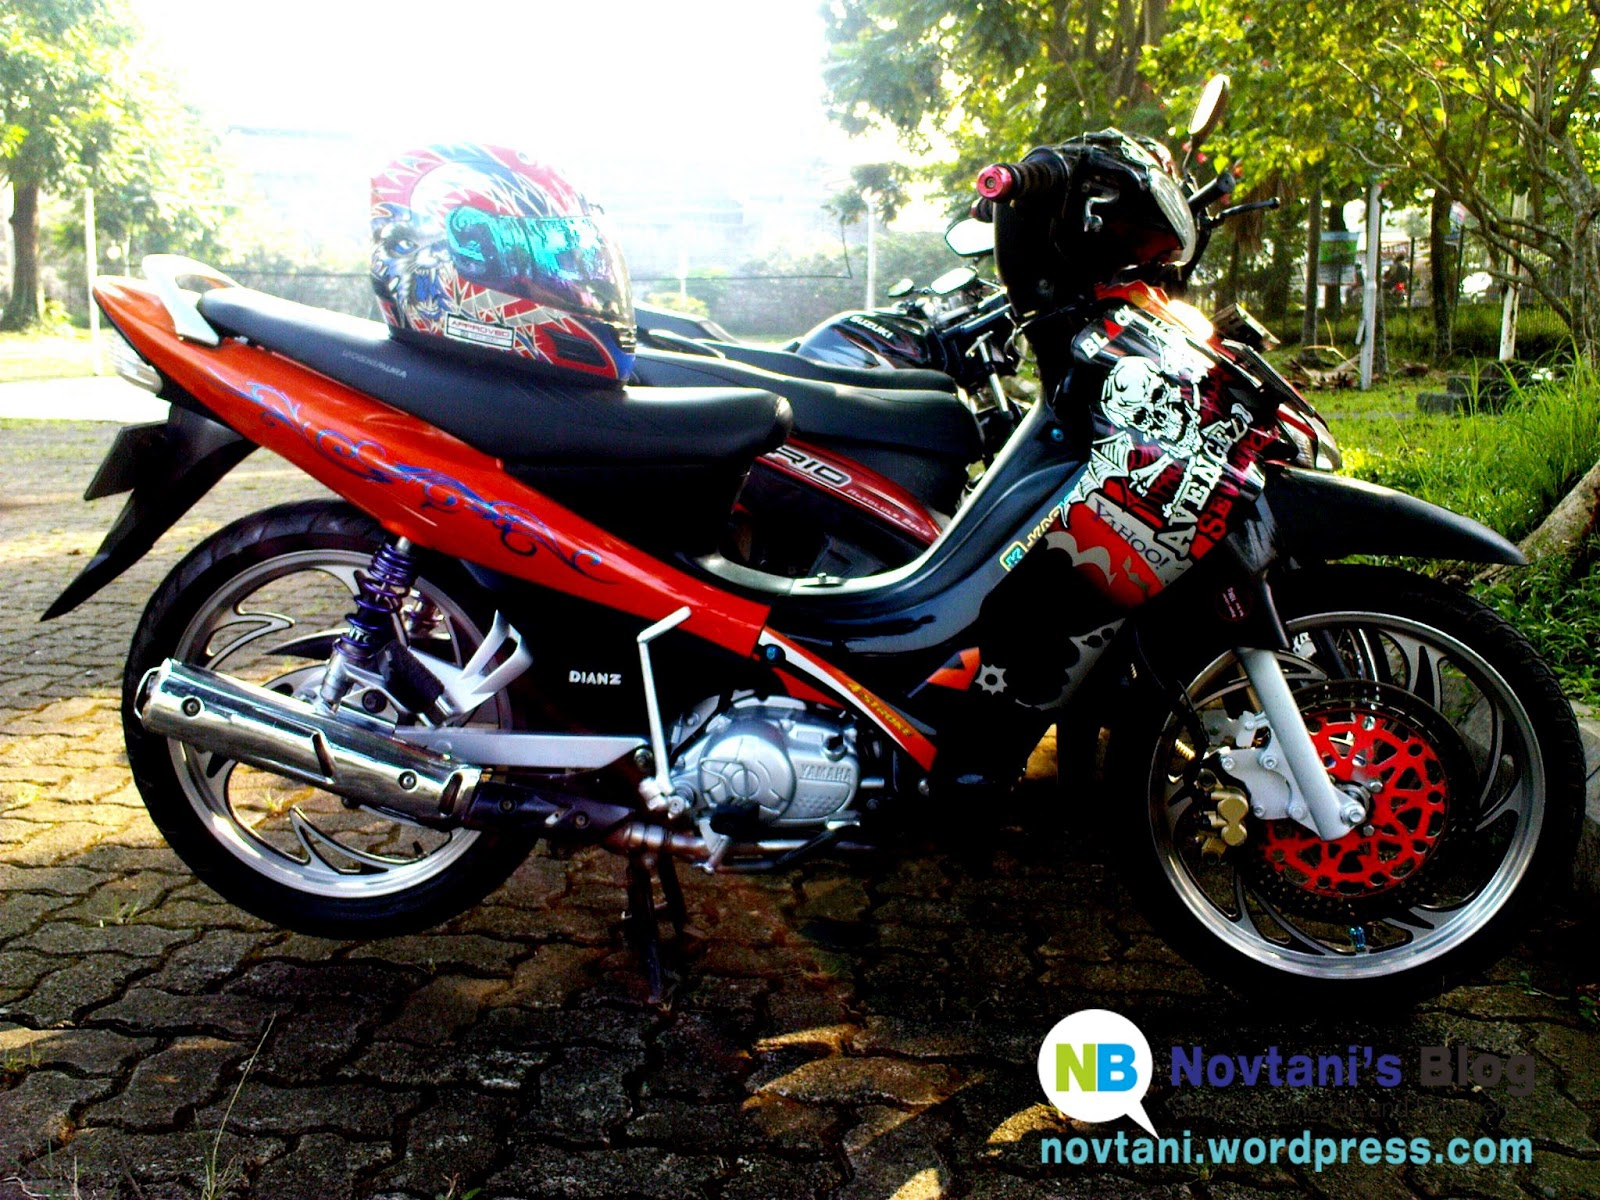 Modifikasi Motor Yamaha Jupiter Mx New  Modifikasi Motor Yamaha 2016